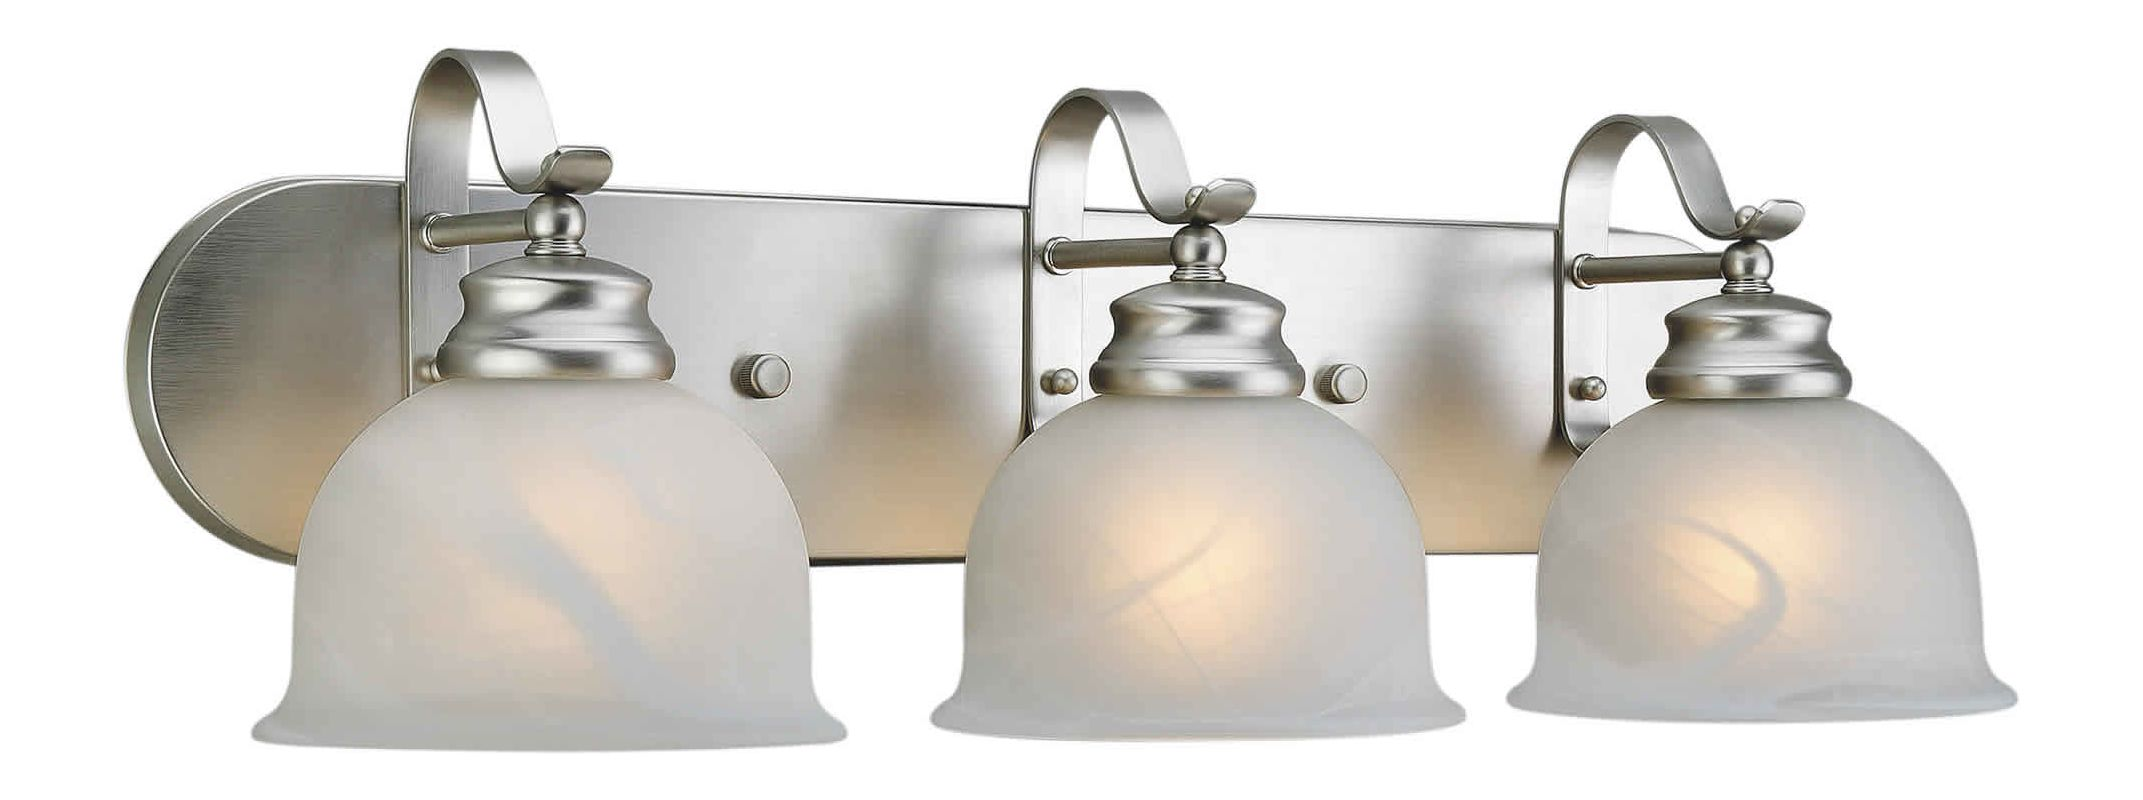 "Forte Lighting 5095-03 3 Light 24"" Wide Bathroom Fixture Brushed"